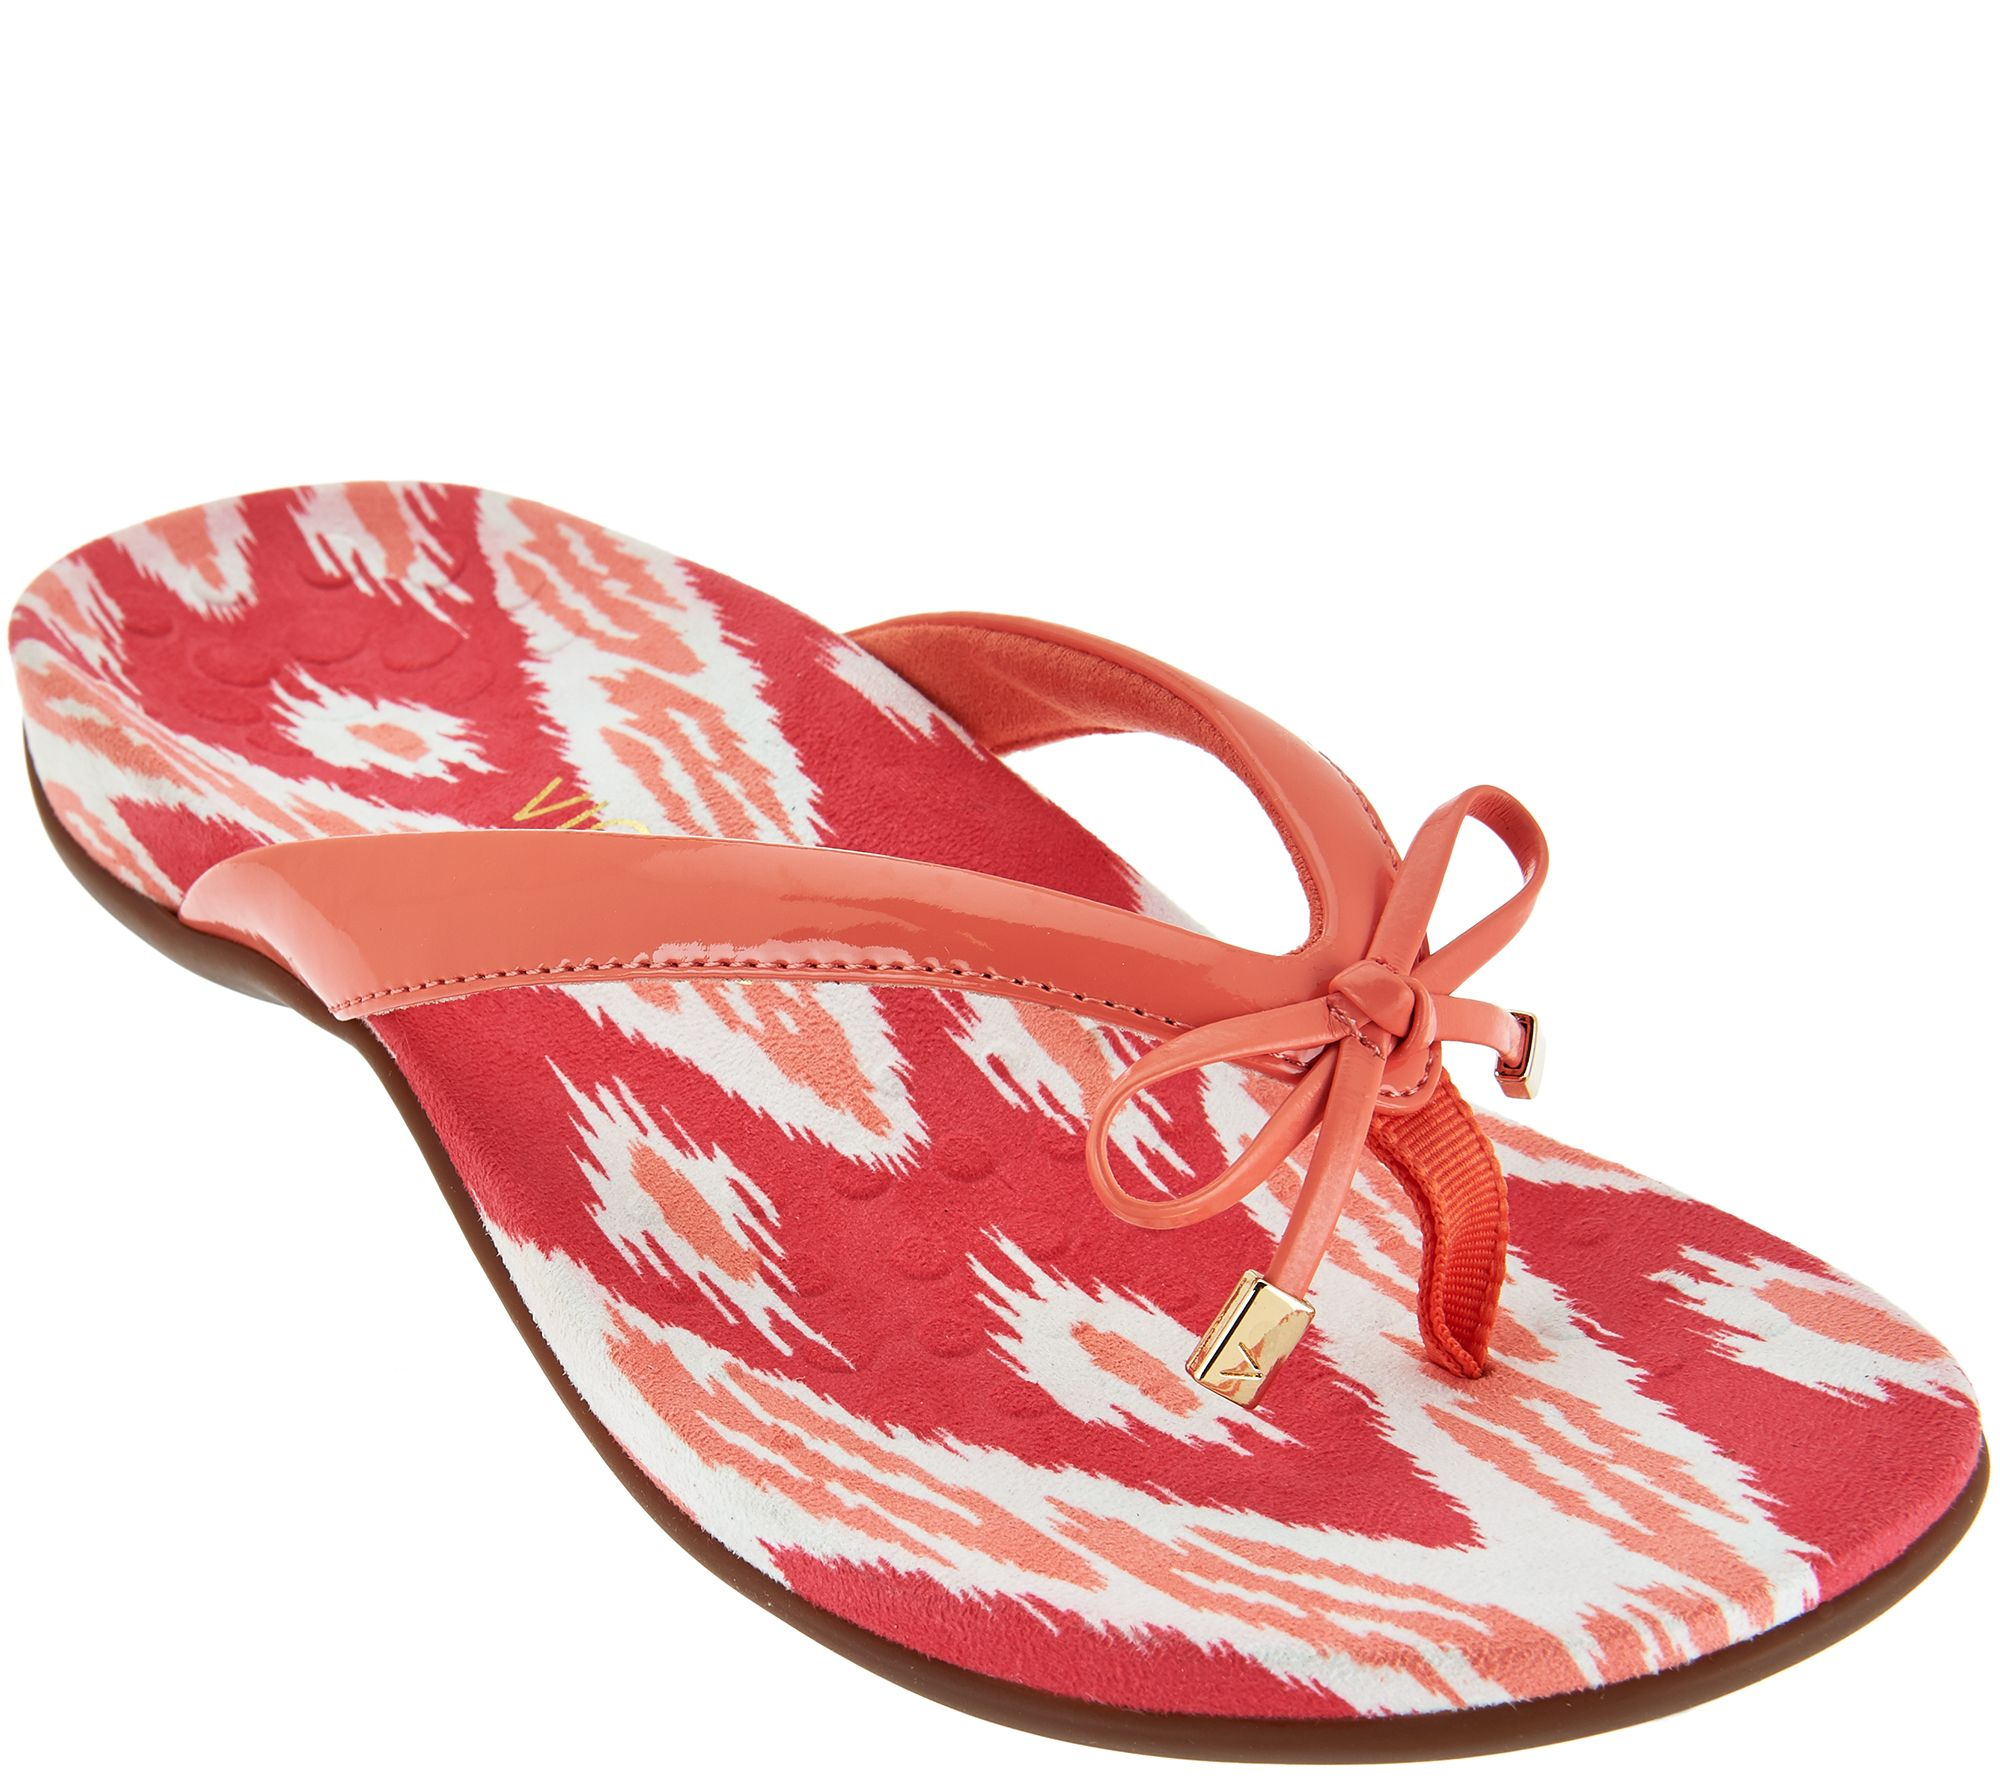 664043a7bc1a Vionic Orthotic Thong Sandals with Bow Detail - Bella Ikat - Page 1 .